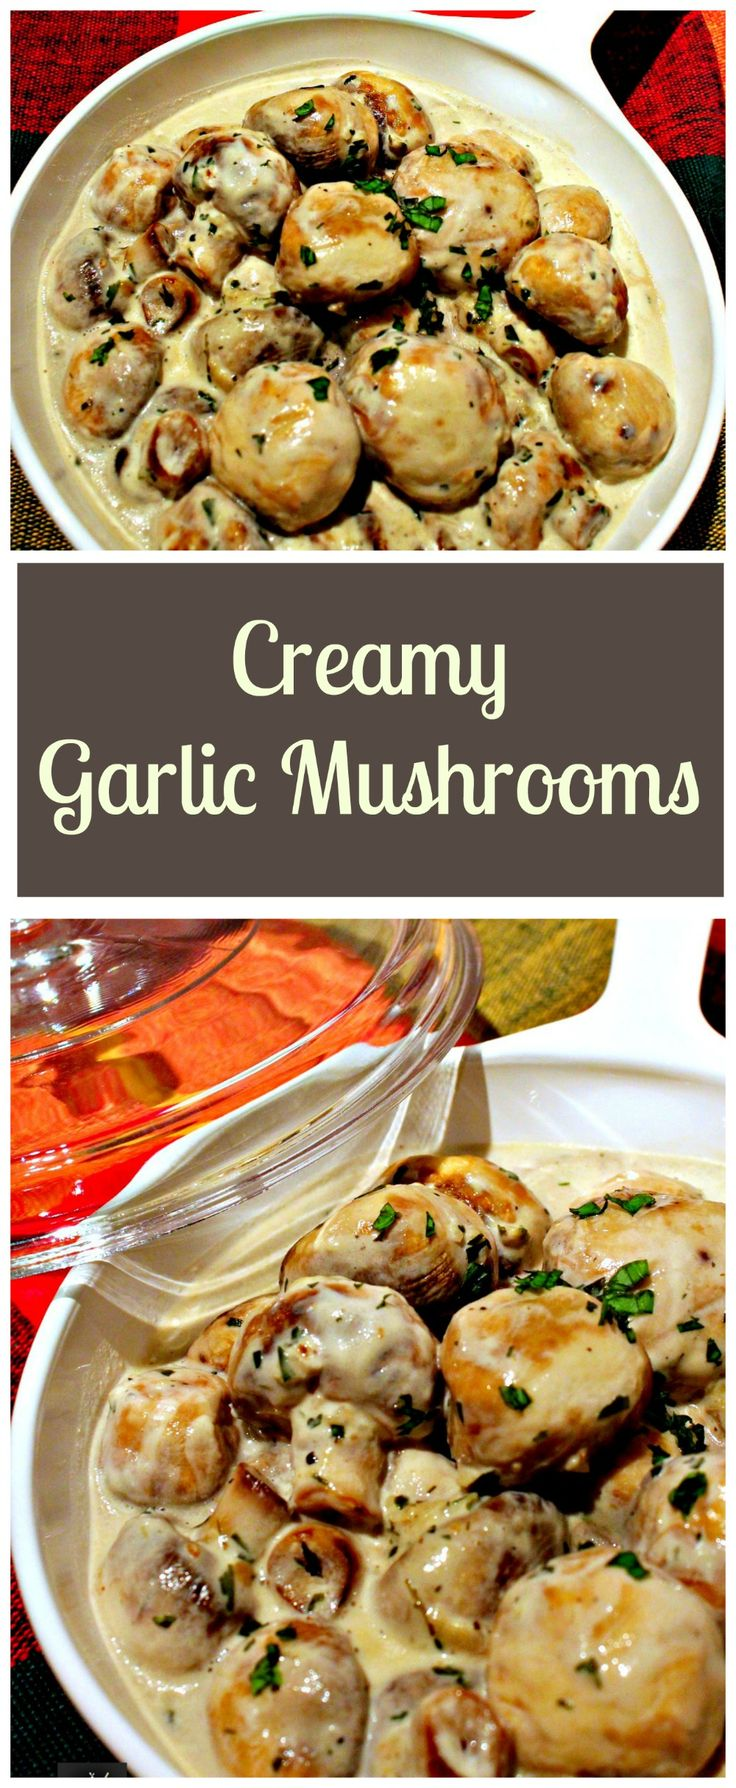 nike reax run 9 Creamy Garlic Mushrooms  This is a very quick  easy and delicious recipe  perfect as a side  serve on toast for brunch  or add to some lovely pasta   mushrooms  garlic  easyrecipe